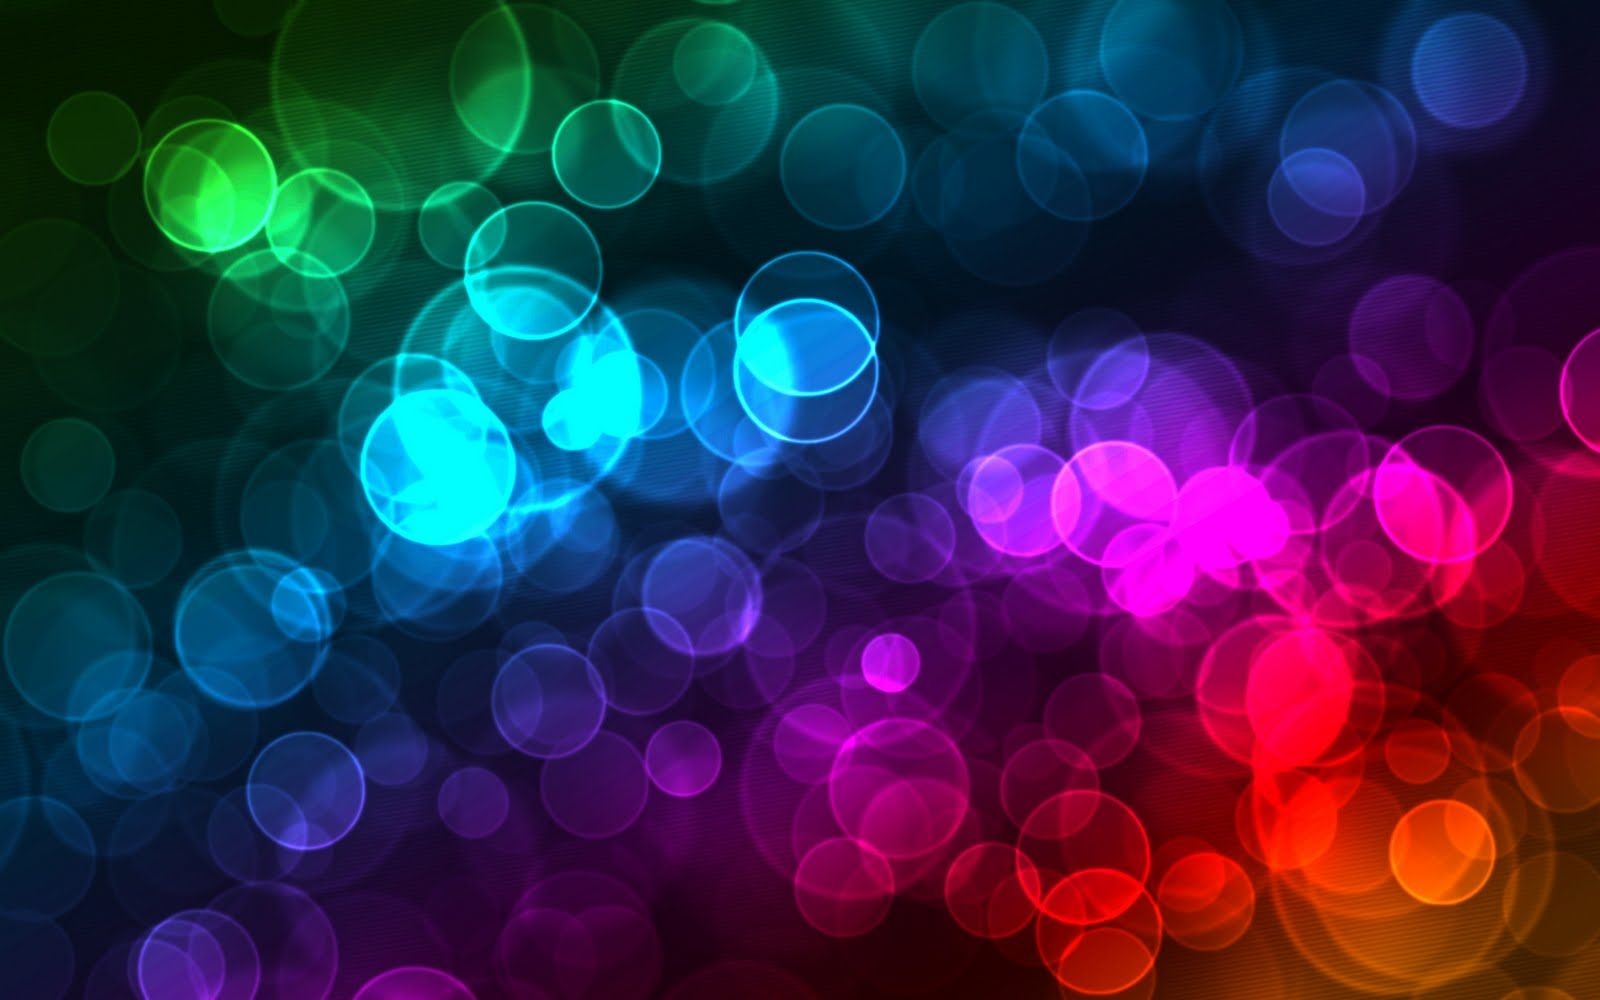 Abstract Bubbles Wallpapers Hq Free Download 8555 Seek Gif